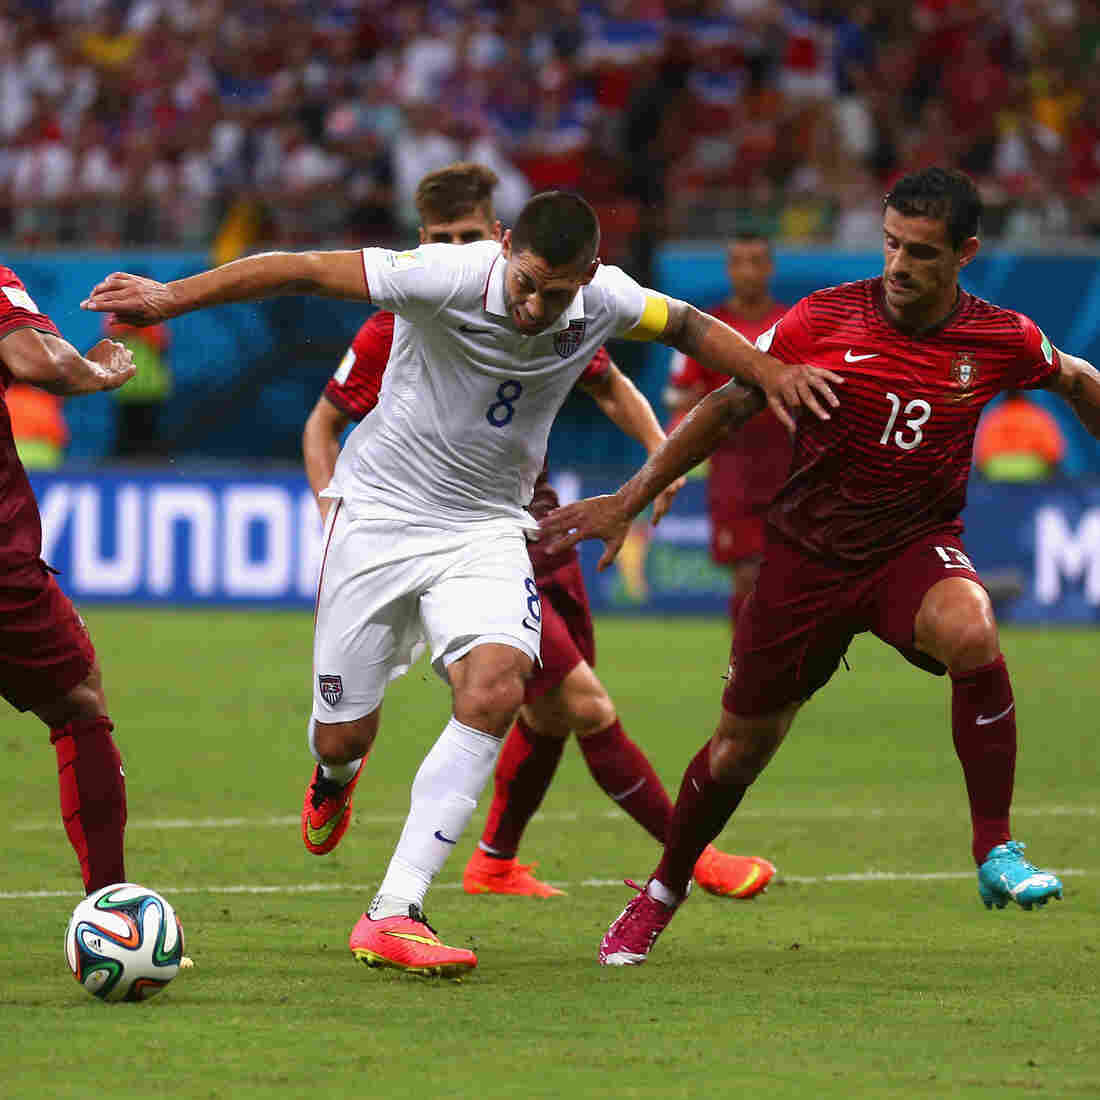 In A Stunning Finish, Portugal Ties U.S.